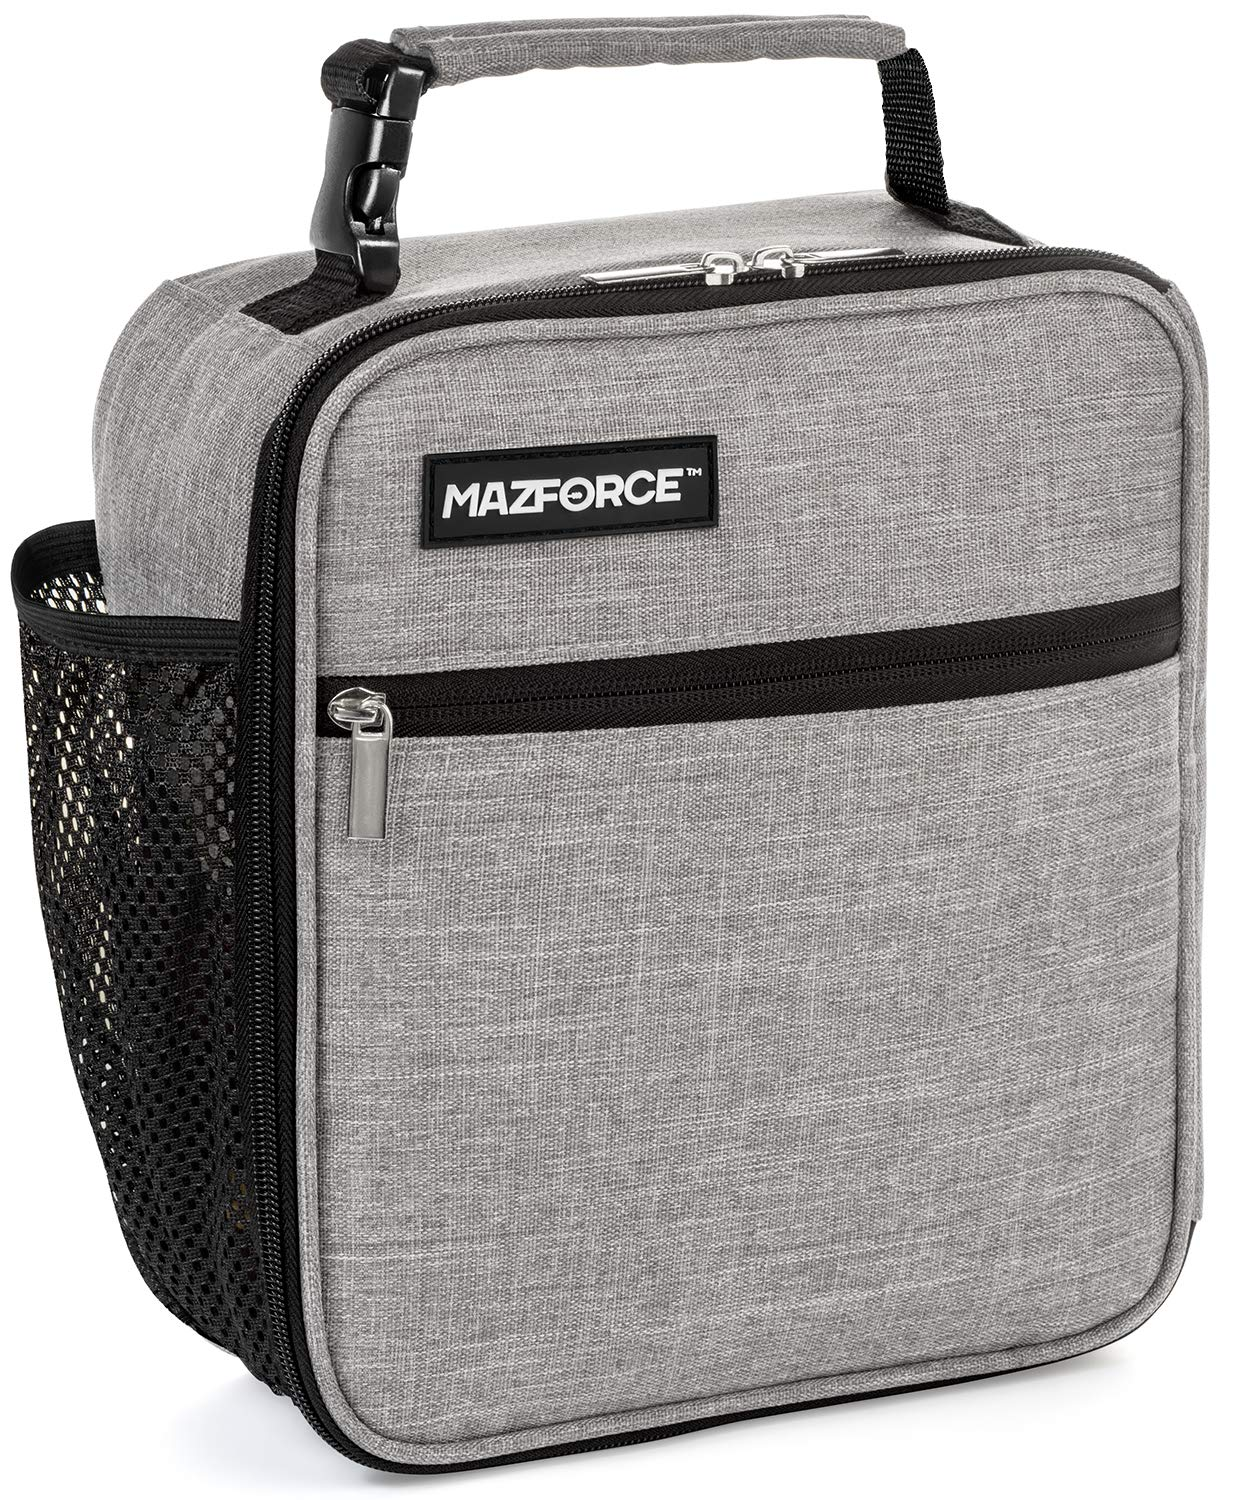 dff4905fb320 MAZFORCE Original Lunch Box Insulated Lunch Bag - Tough & Spacious Adult  Lunchbox to Seize Your Day (Wolf Grey - Lunch Bags Designed in California  for ...